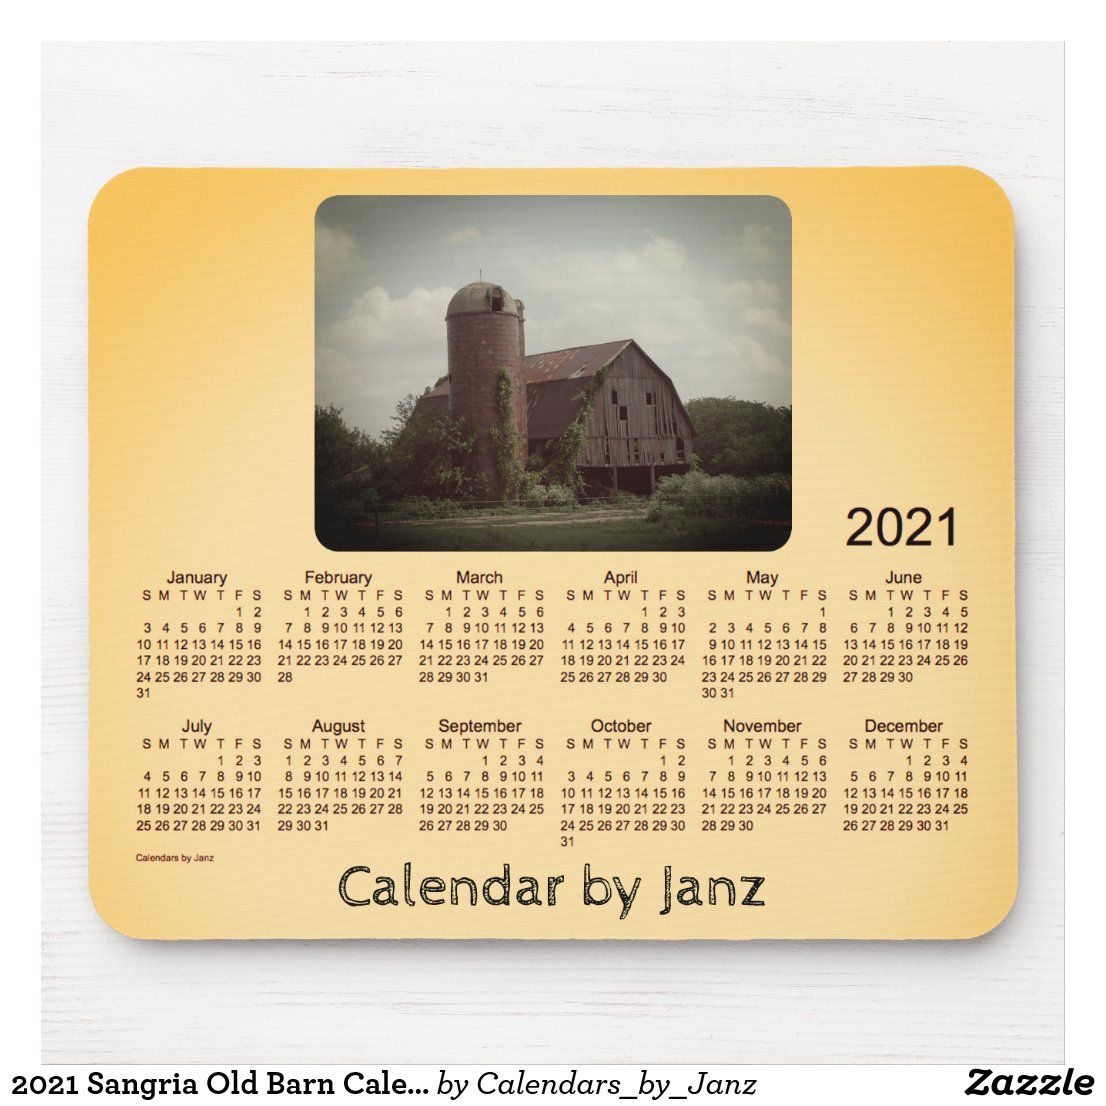 Sangria Old Barn Calendar by Janz Mouse Pad Zazzle